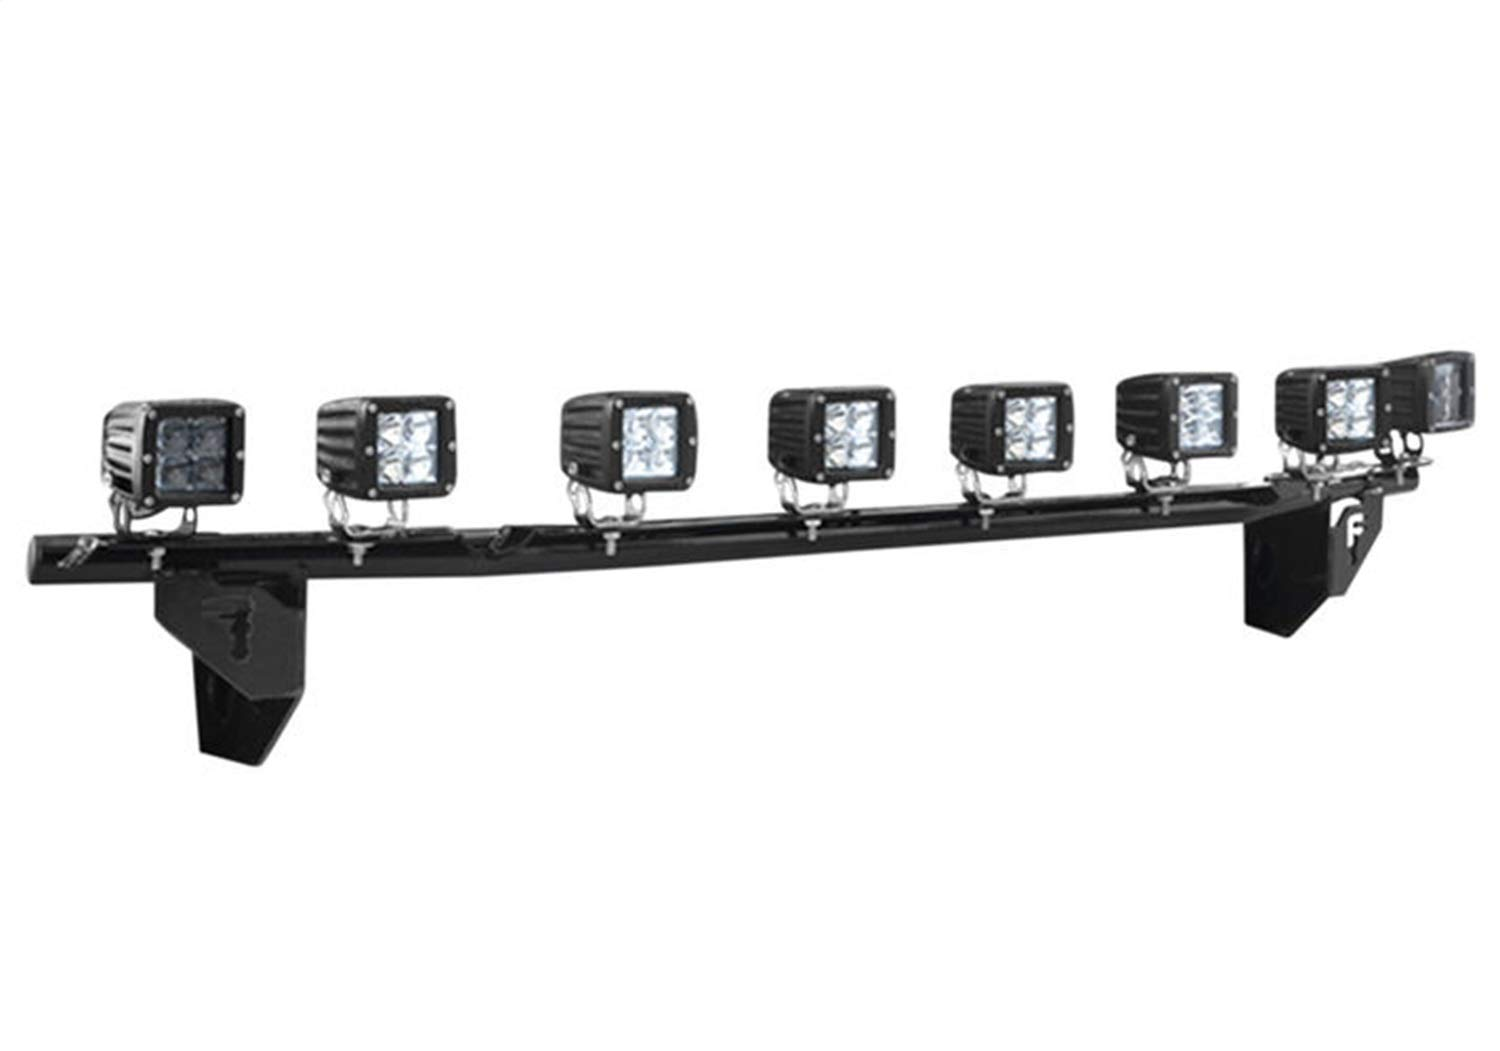 N-Fab F1530LD-TX Textured Black Light Bar : Multi-Mount System (MMS) Black-F1530LD-TX